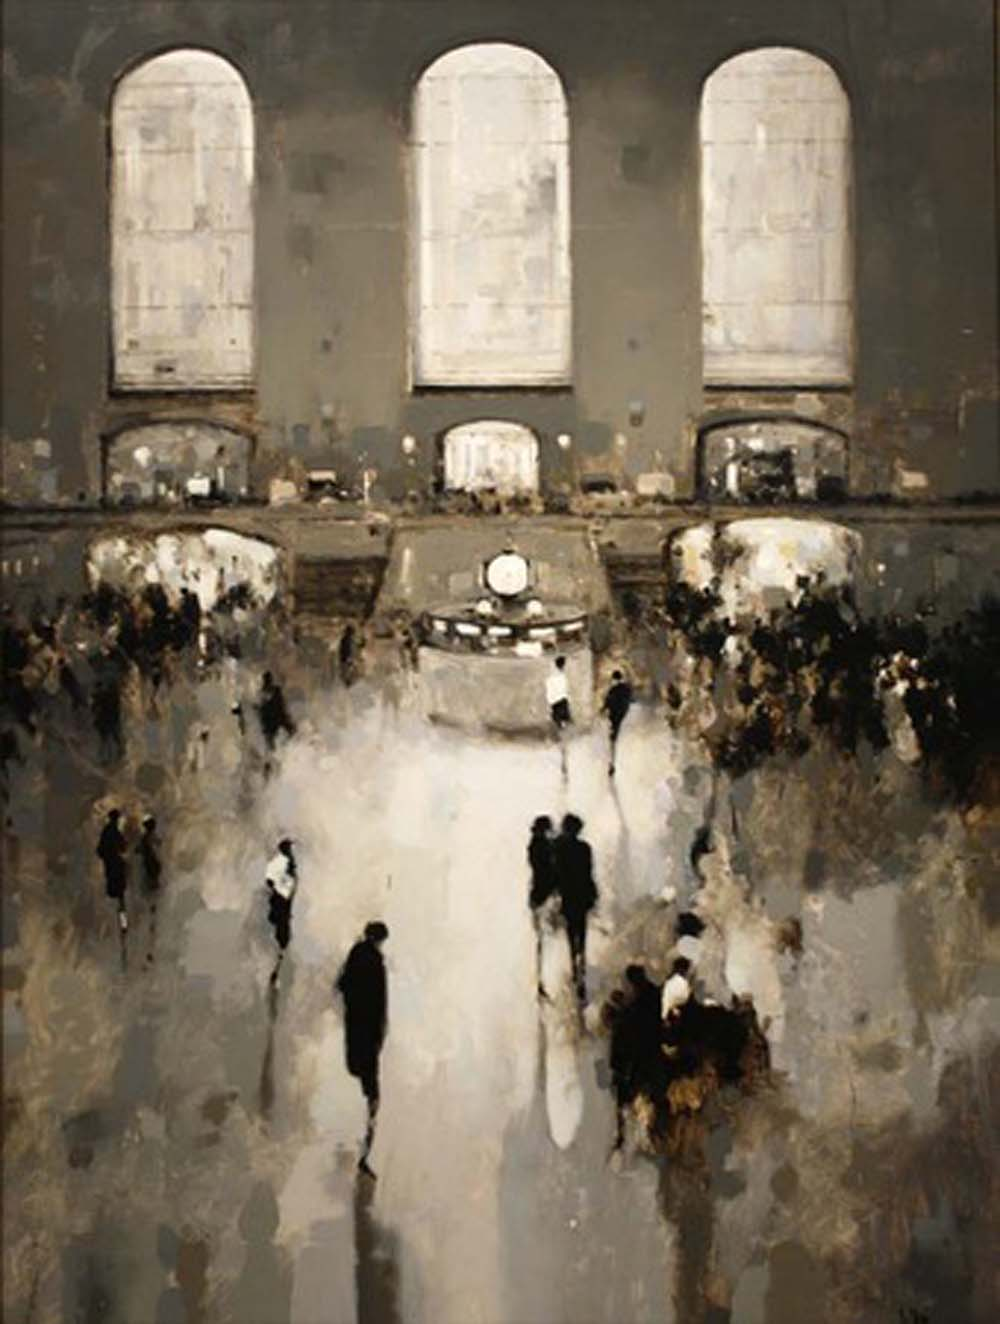 Geoffrey Johnson, Study Grand Central, oil on wood panel, 2013 via  Hubert Gallery